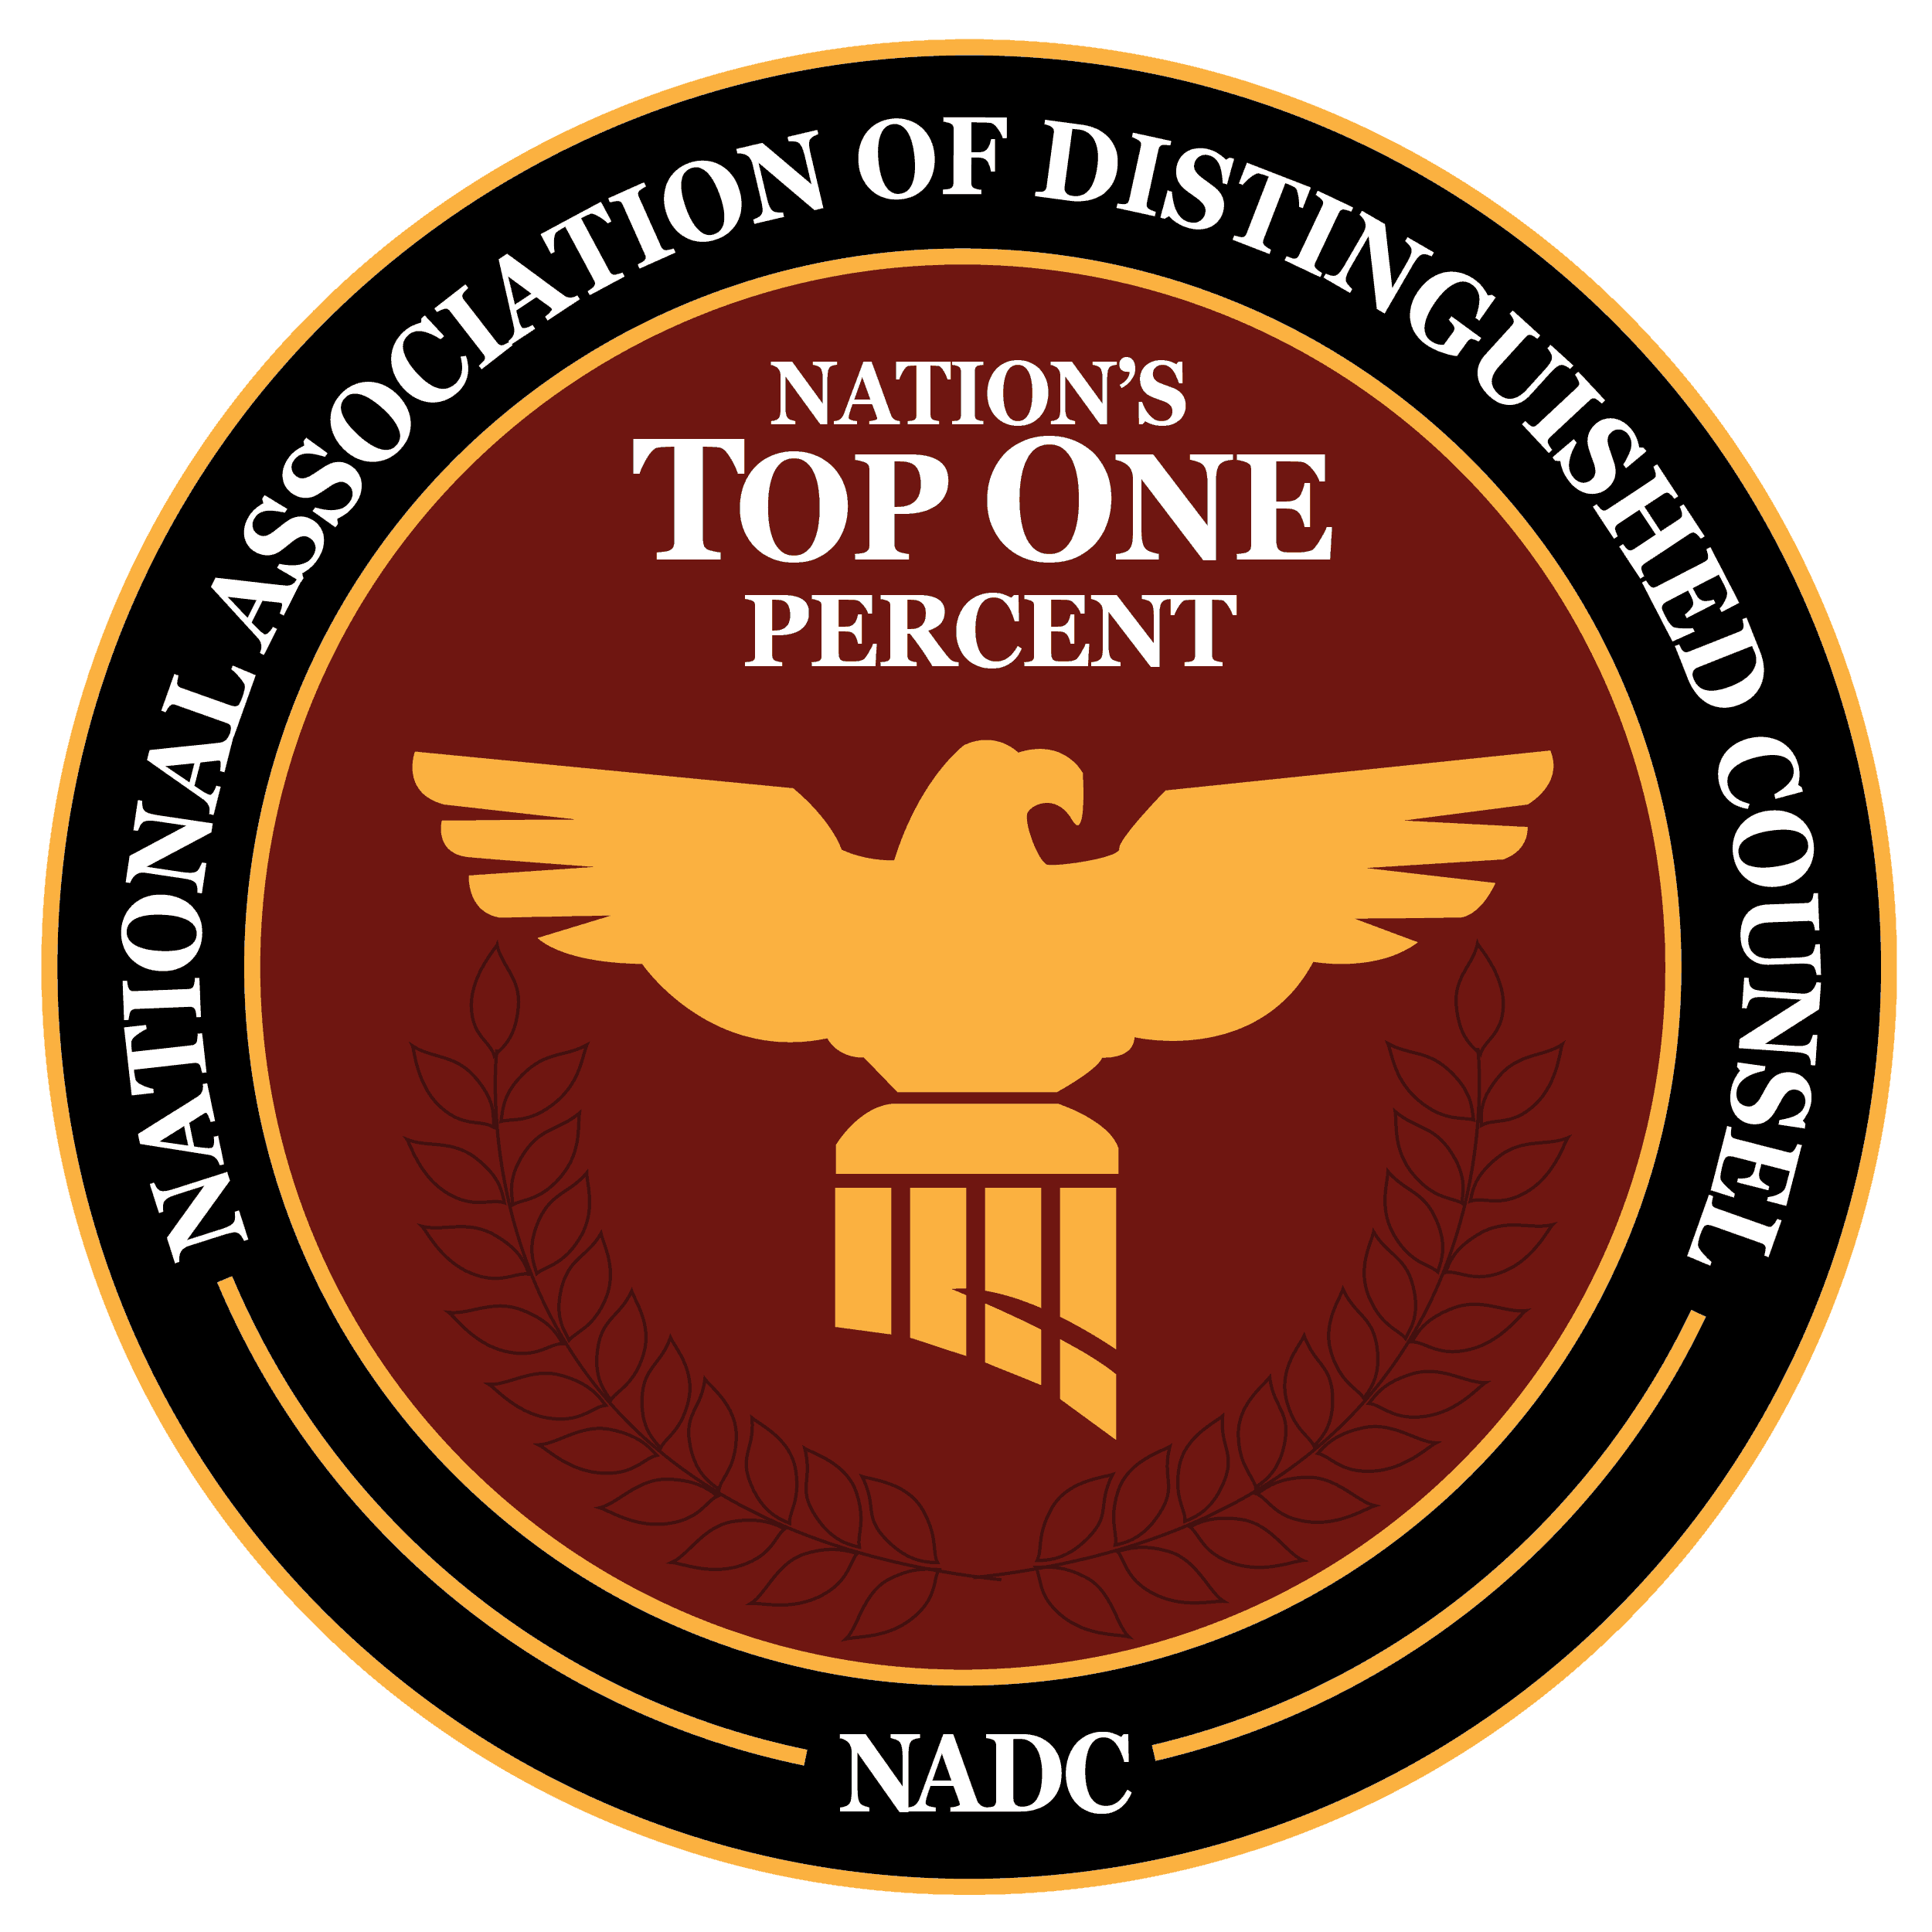 National Association of Distinguished Counsel - NADC Logo - Nation's Top One Percent